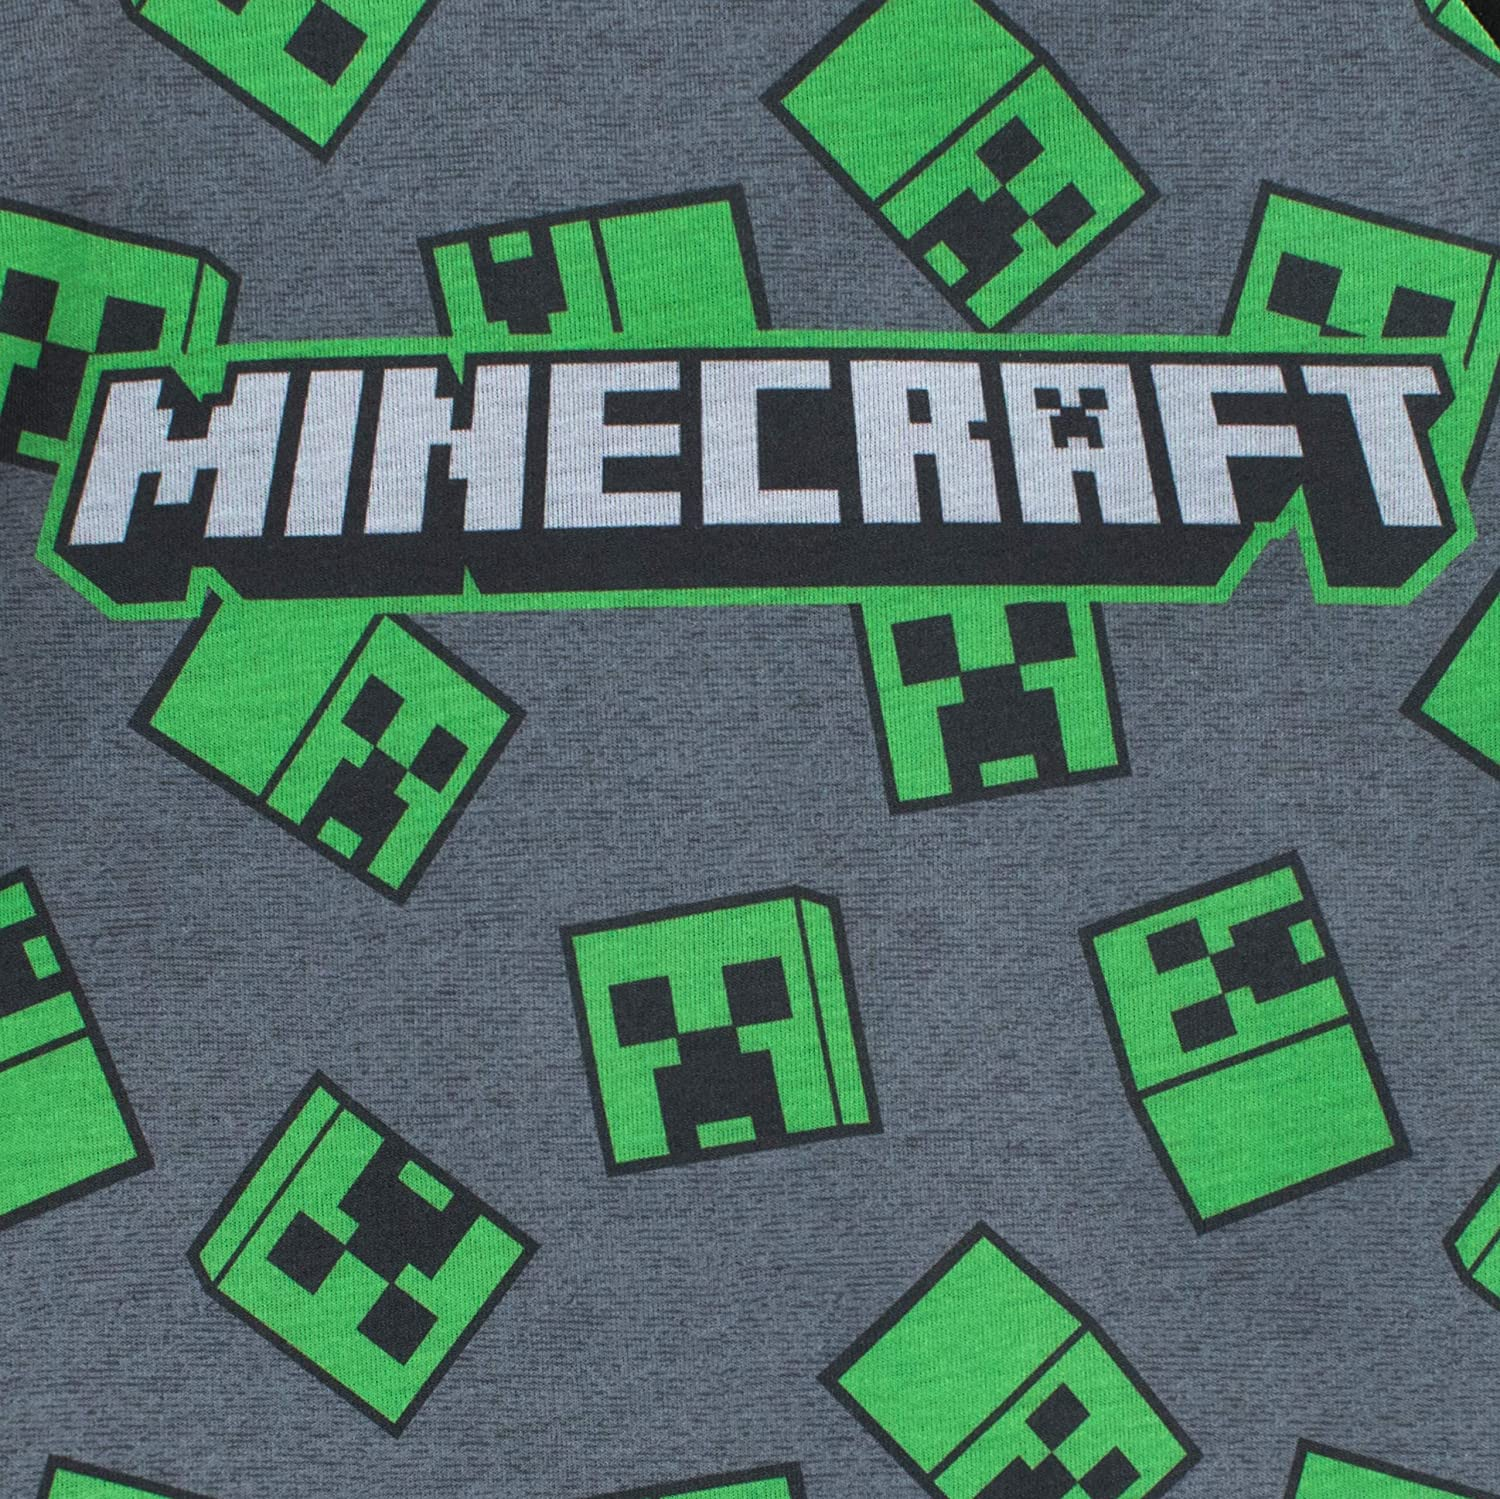 Minecraft Glitching Creeper Boys Long Pyjamas Set School Boys PJs PS4 PS5 Xbox Gamer Gifts Kids Birthday Gift Idea Childrens Clothes Official Merchandise